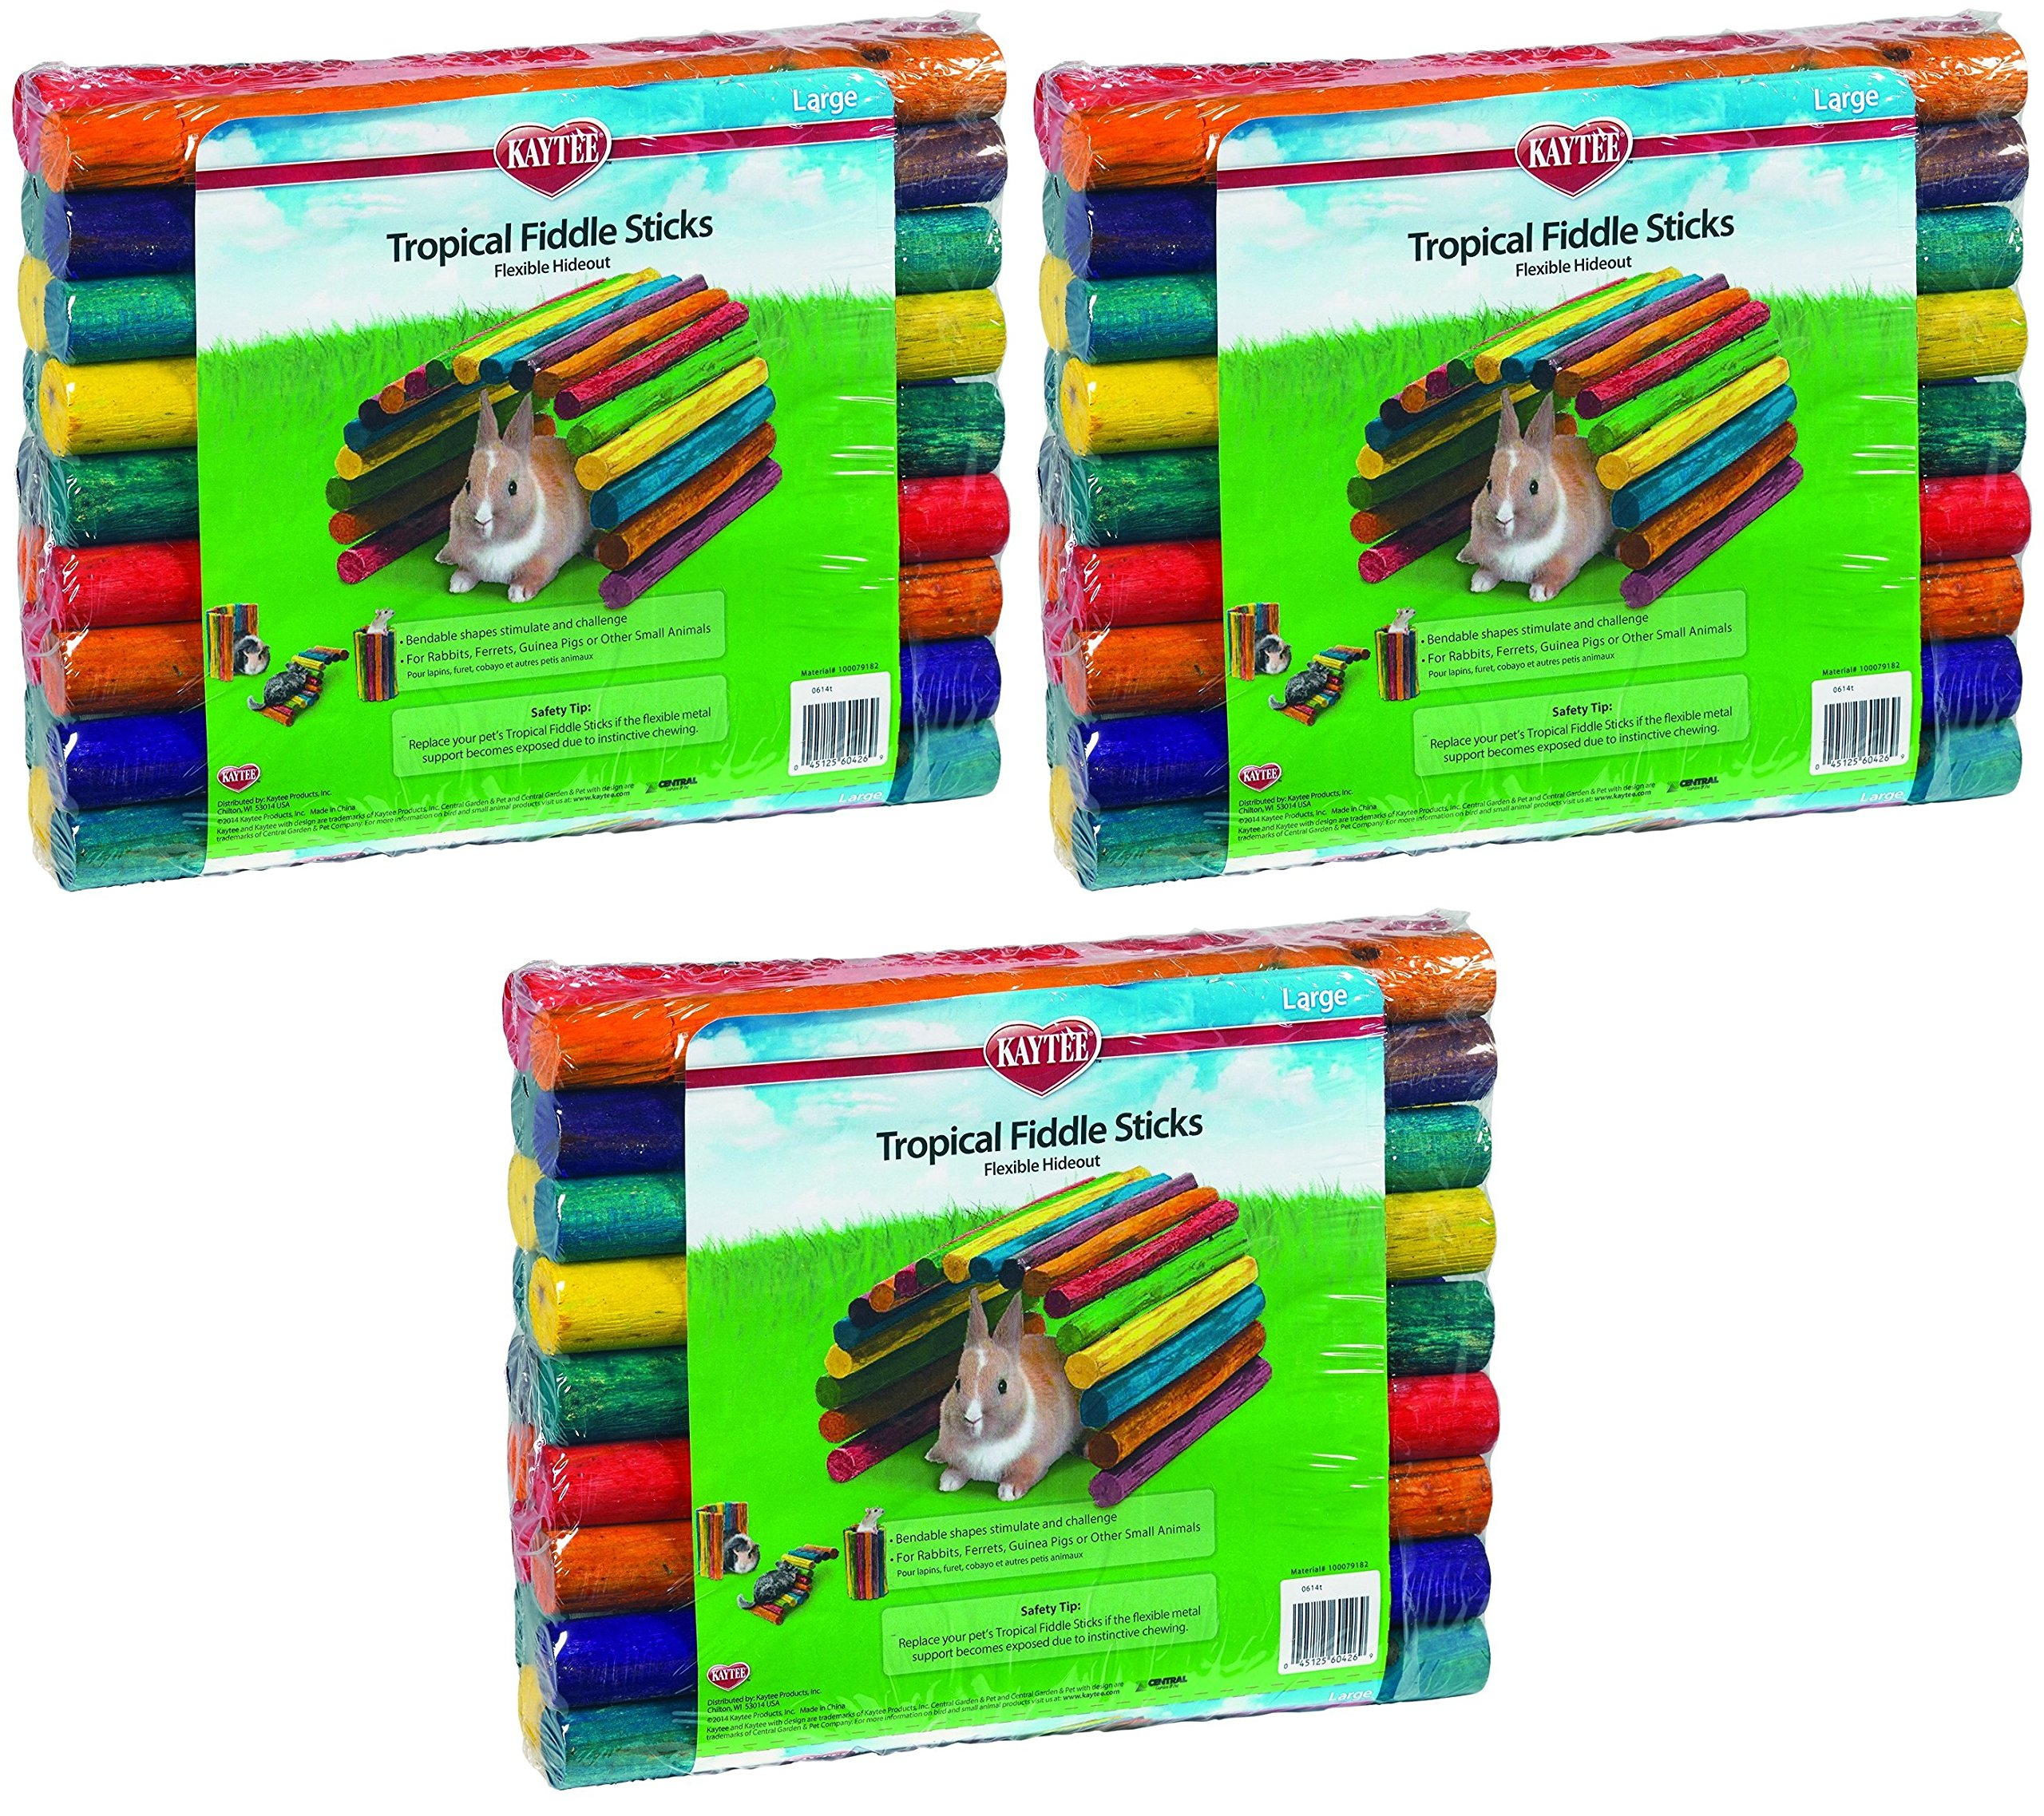 (3 Pack) Kaytee Tropical Fiddle Sticks Hideout, Size Large by Kaytee (Image #1)